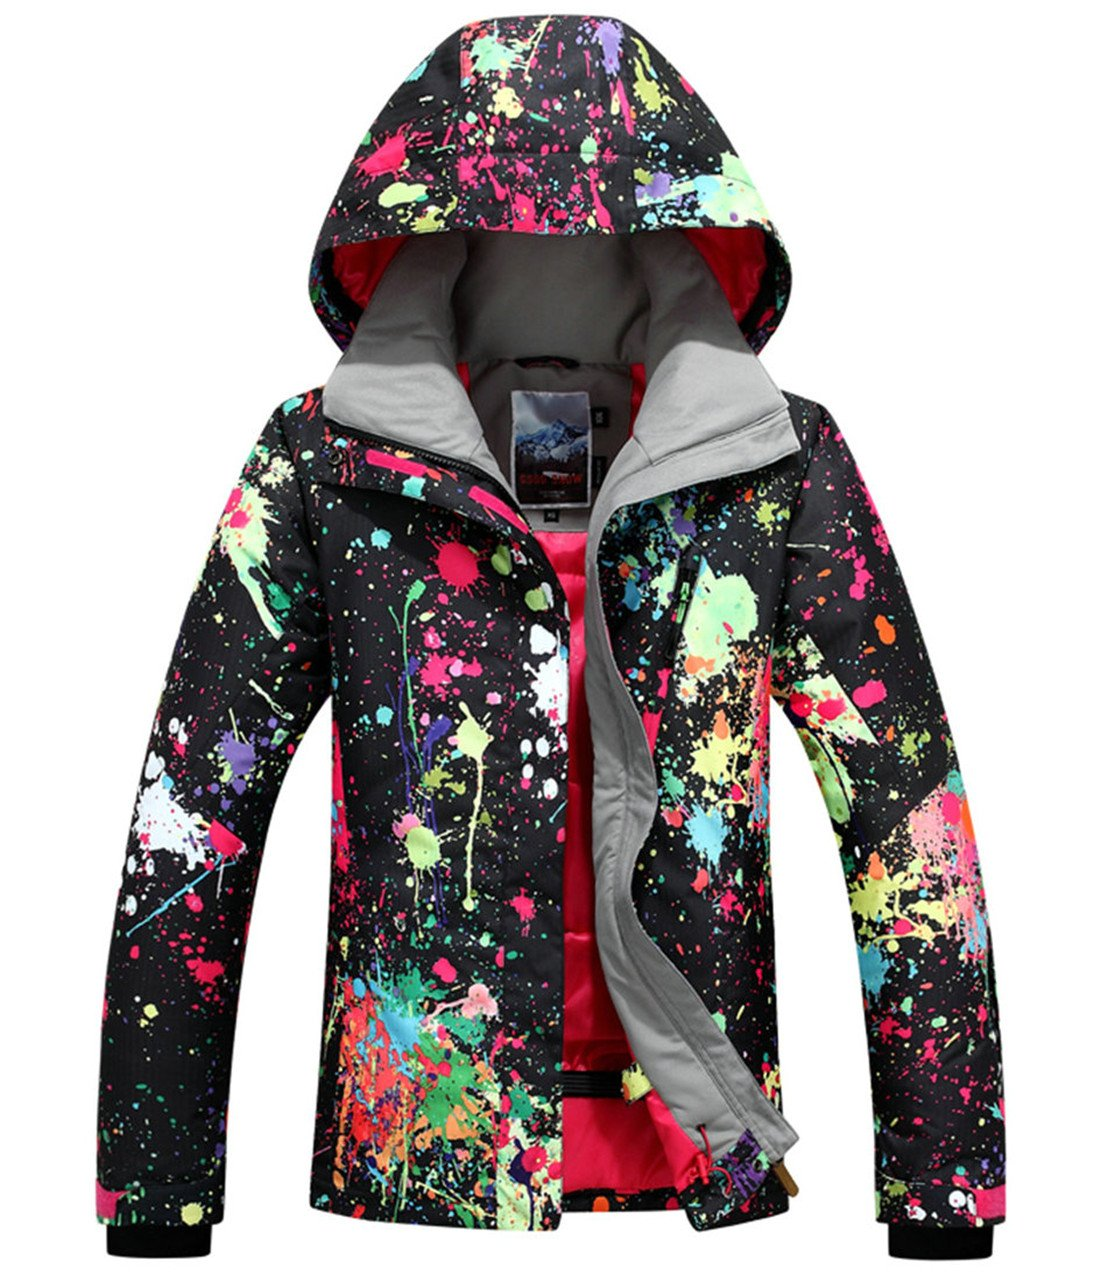 APTRO Women's High Windproof Technology Colorfull Printed Ski Jacket Style #897 Size M by APTRO